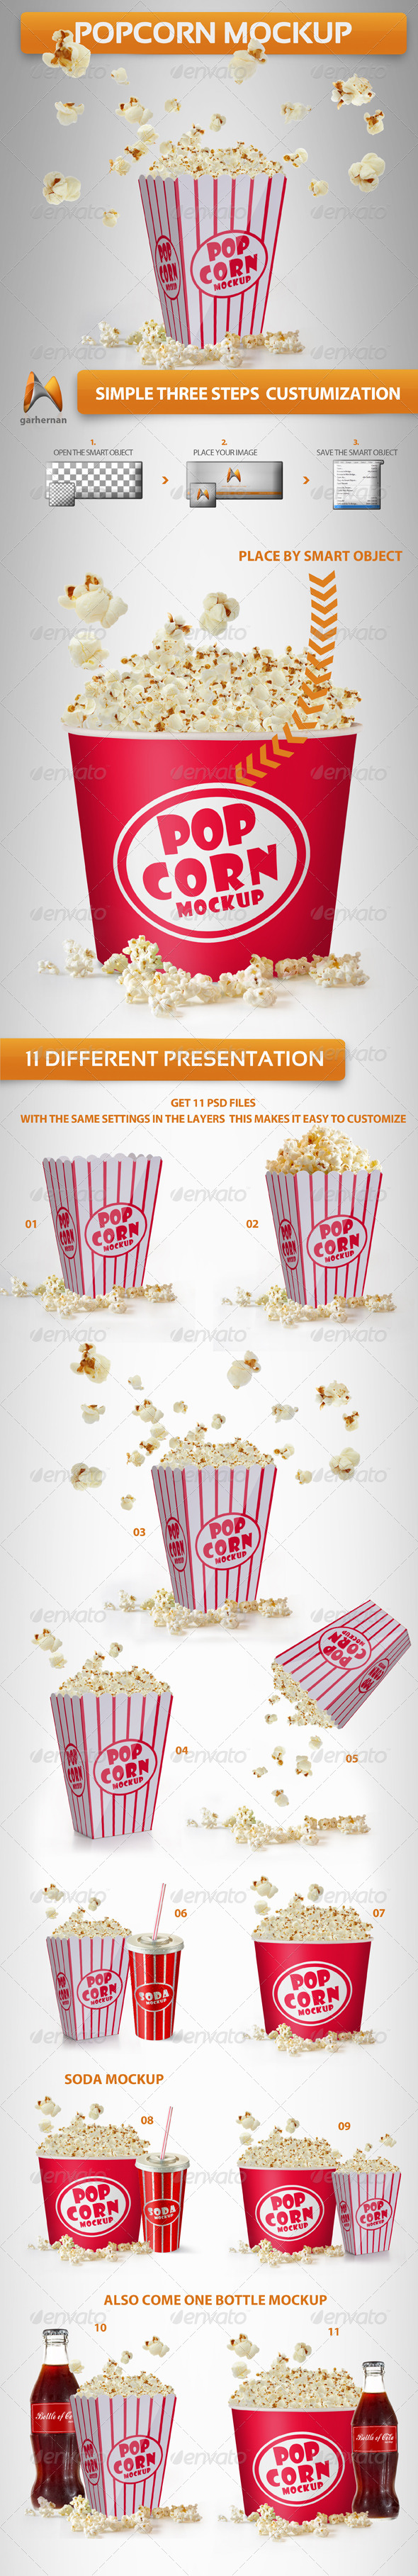 Popcorn Mockup - Food and Drink Packaging